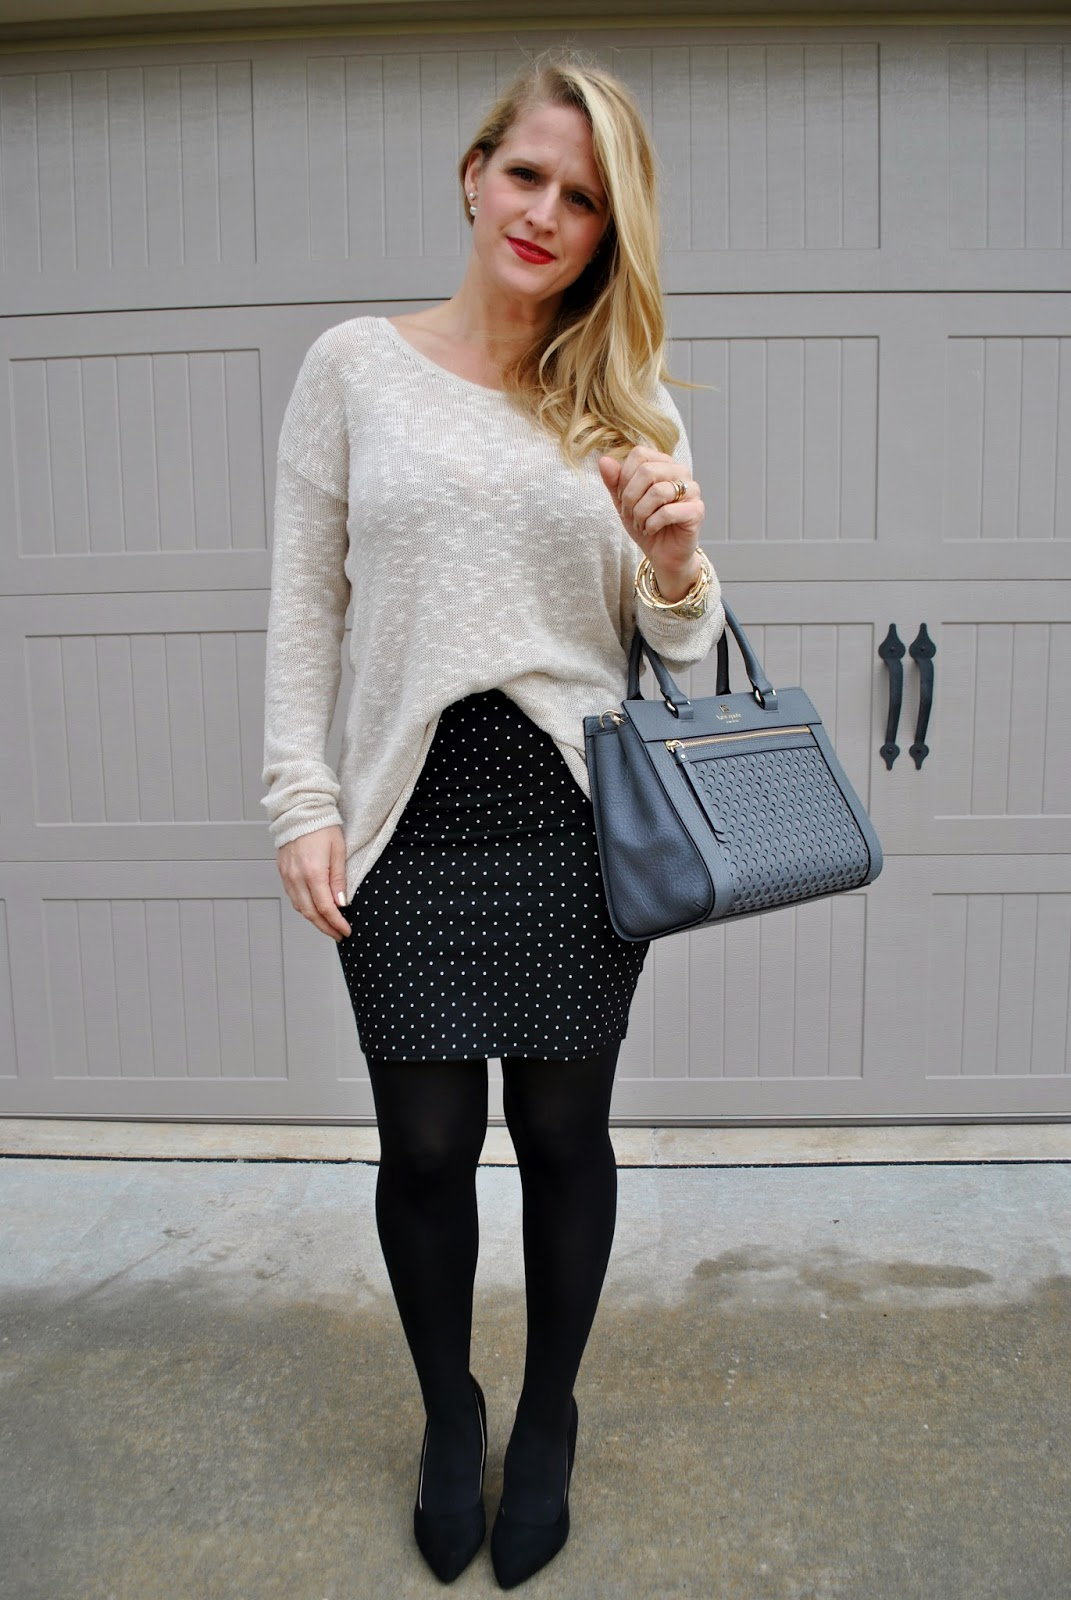 Outfit of the Day, Cozy Knit Sweater, Pencil Skirt, Kate Spade Satchel